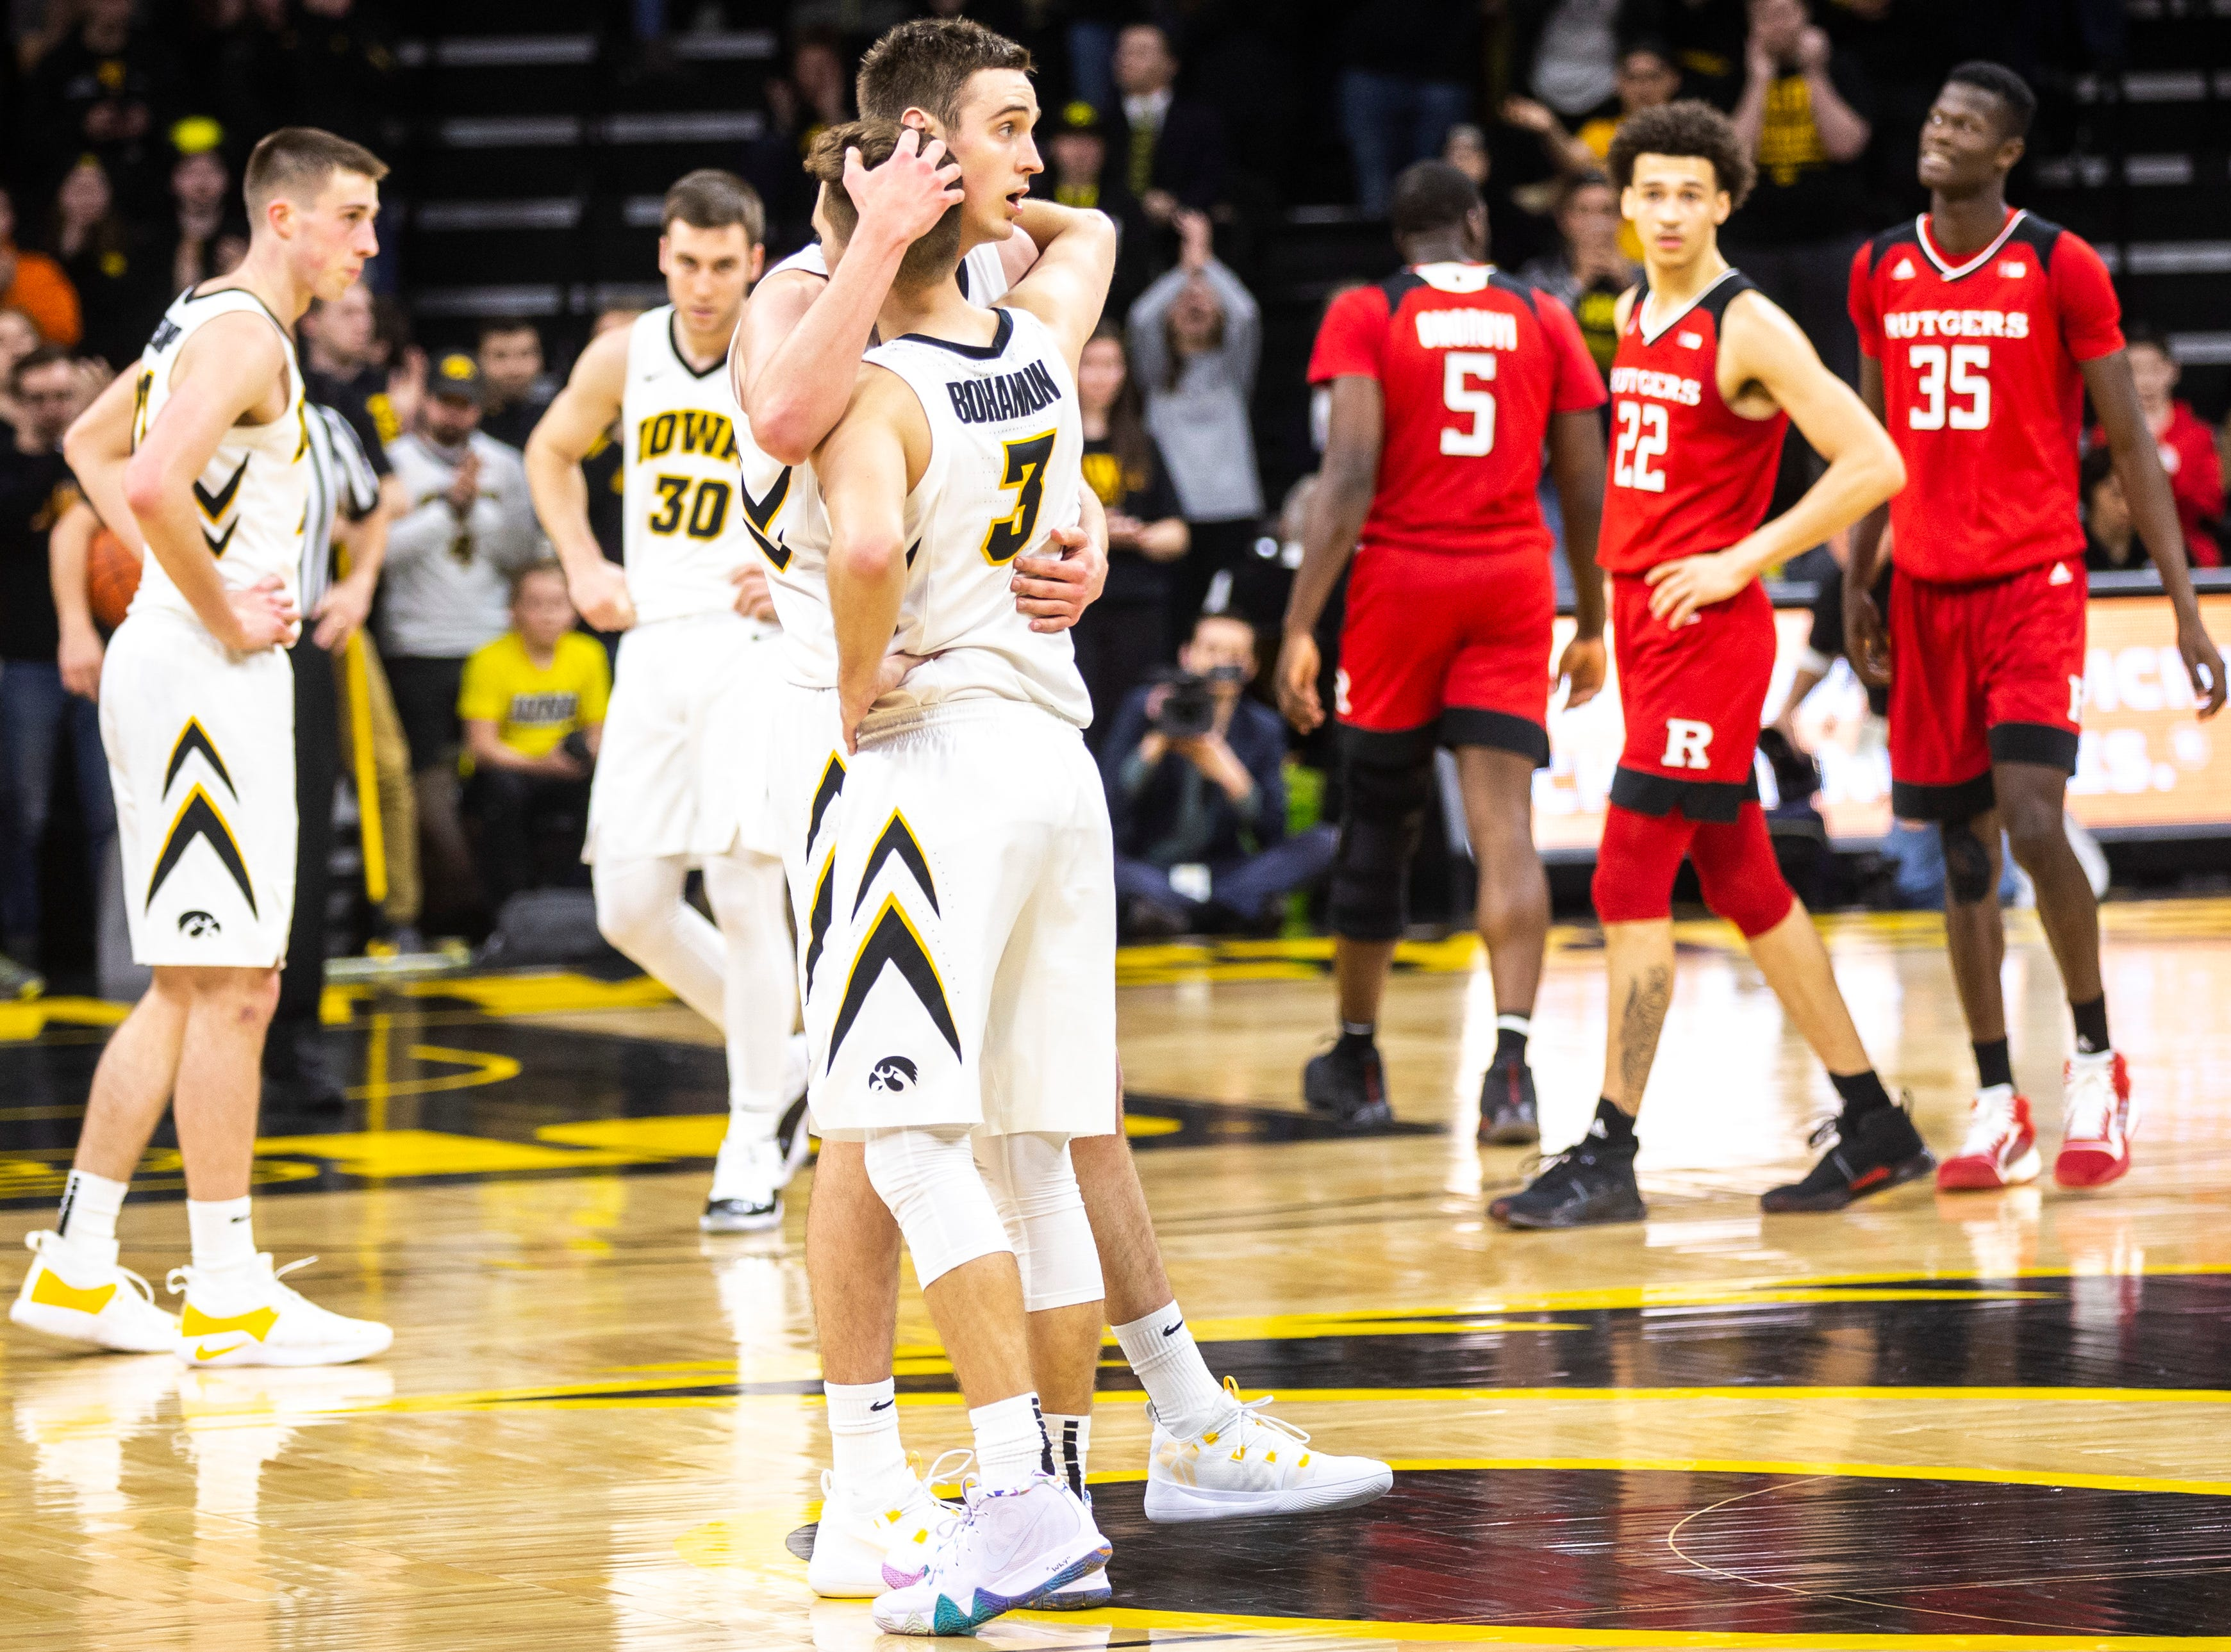 Iowa guard Jordan Bohannon (3) gives Iowa forward Nicholas Baer (51) a hug during a NCAA Big Ten Conference men's basketball game on Saturday, March 2, 2019, at Carver-Hawkeye Arena in Iowa City, Iowa.